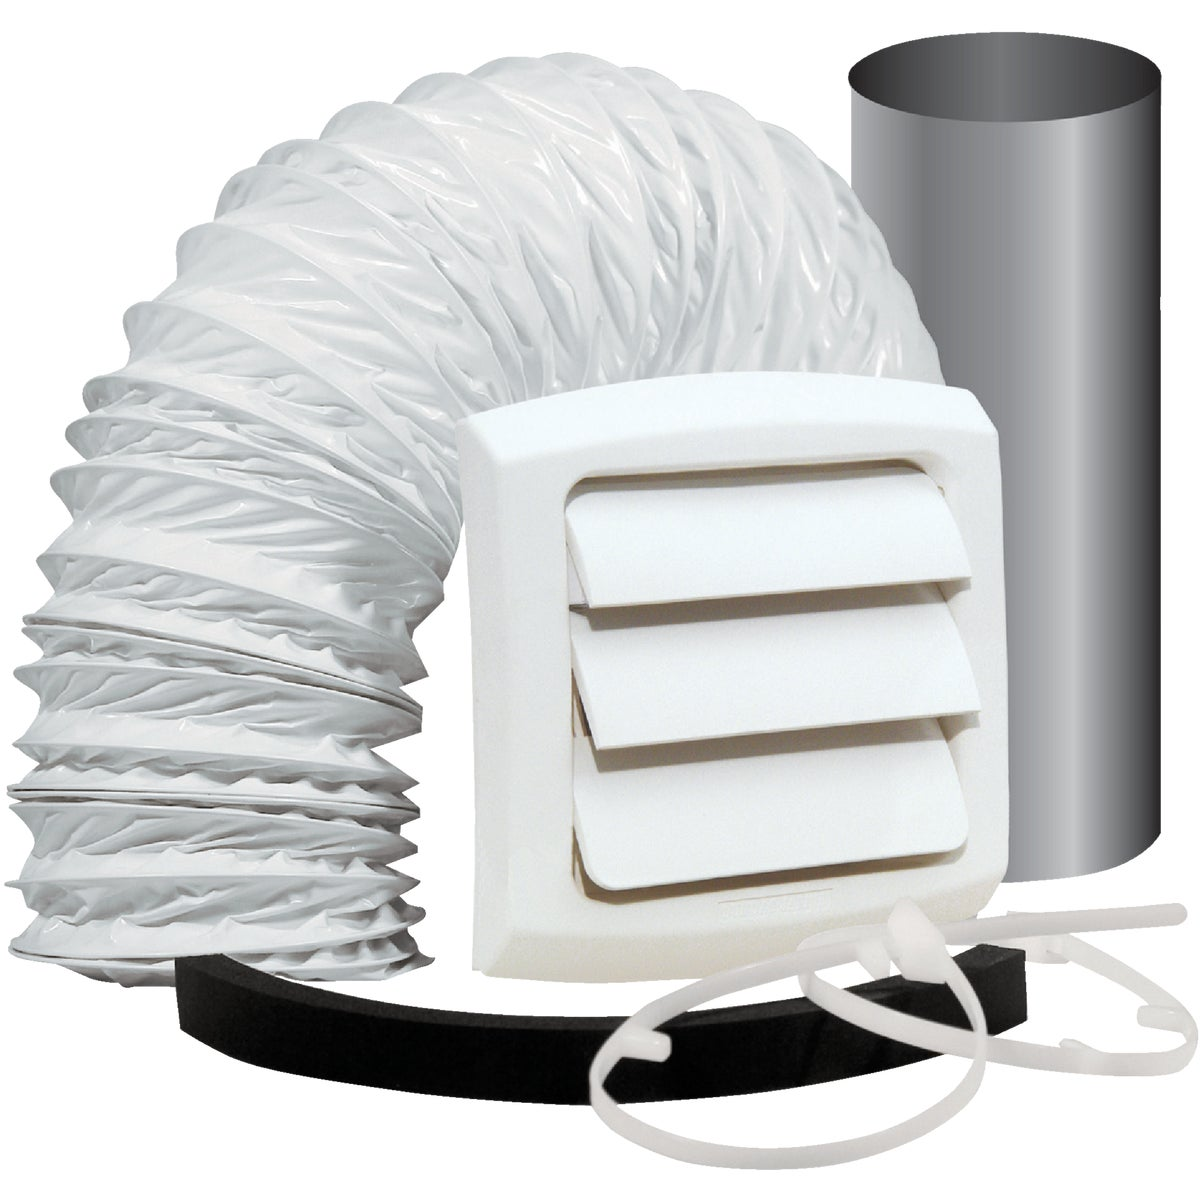 BATHROOM WALL VENT KIT - EXWTZW by Dundas Jafine